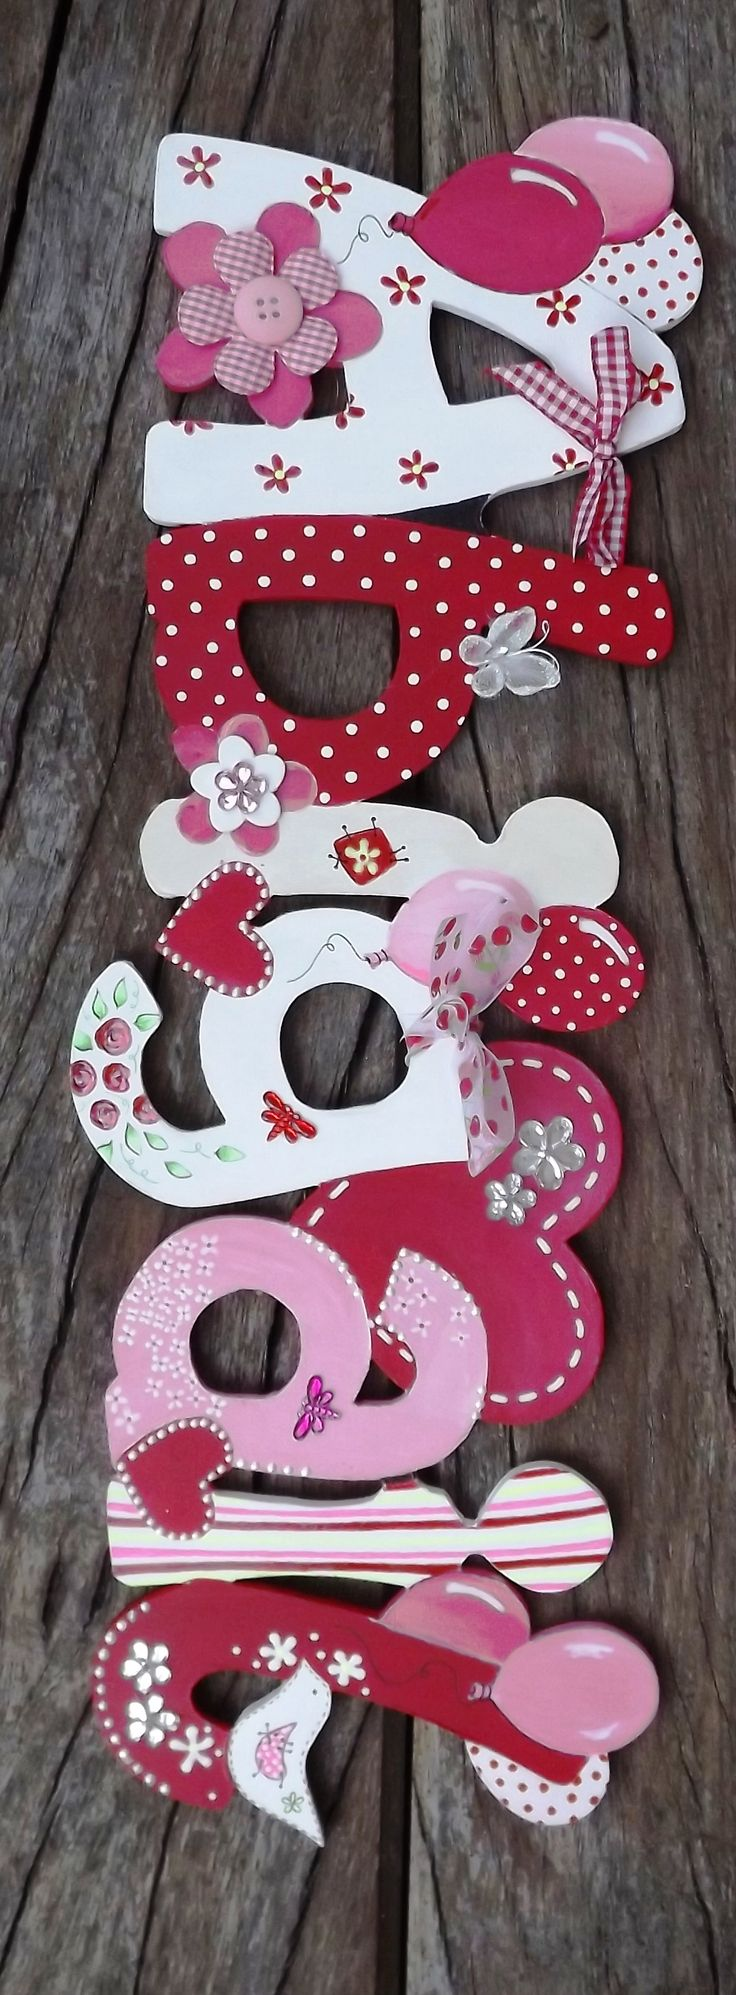 Girls Name Plaques - Handmade Childrens Name Plaques,Handmade Crafts & Gifts,Handmade Wooden Crafts,Vintage Letters,reclaimed metal letters,Unusual Gifts